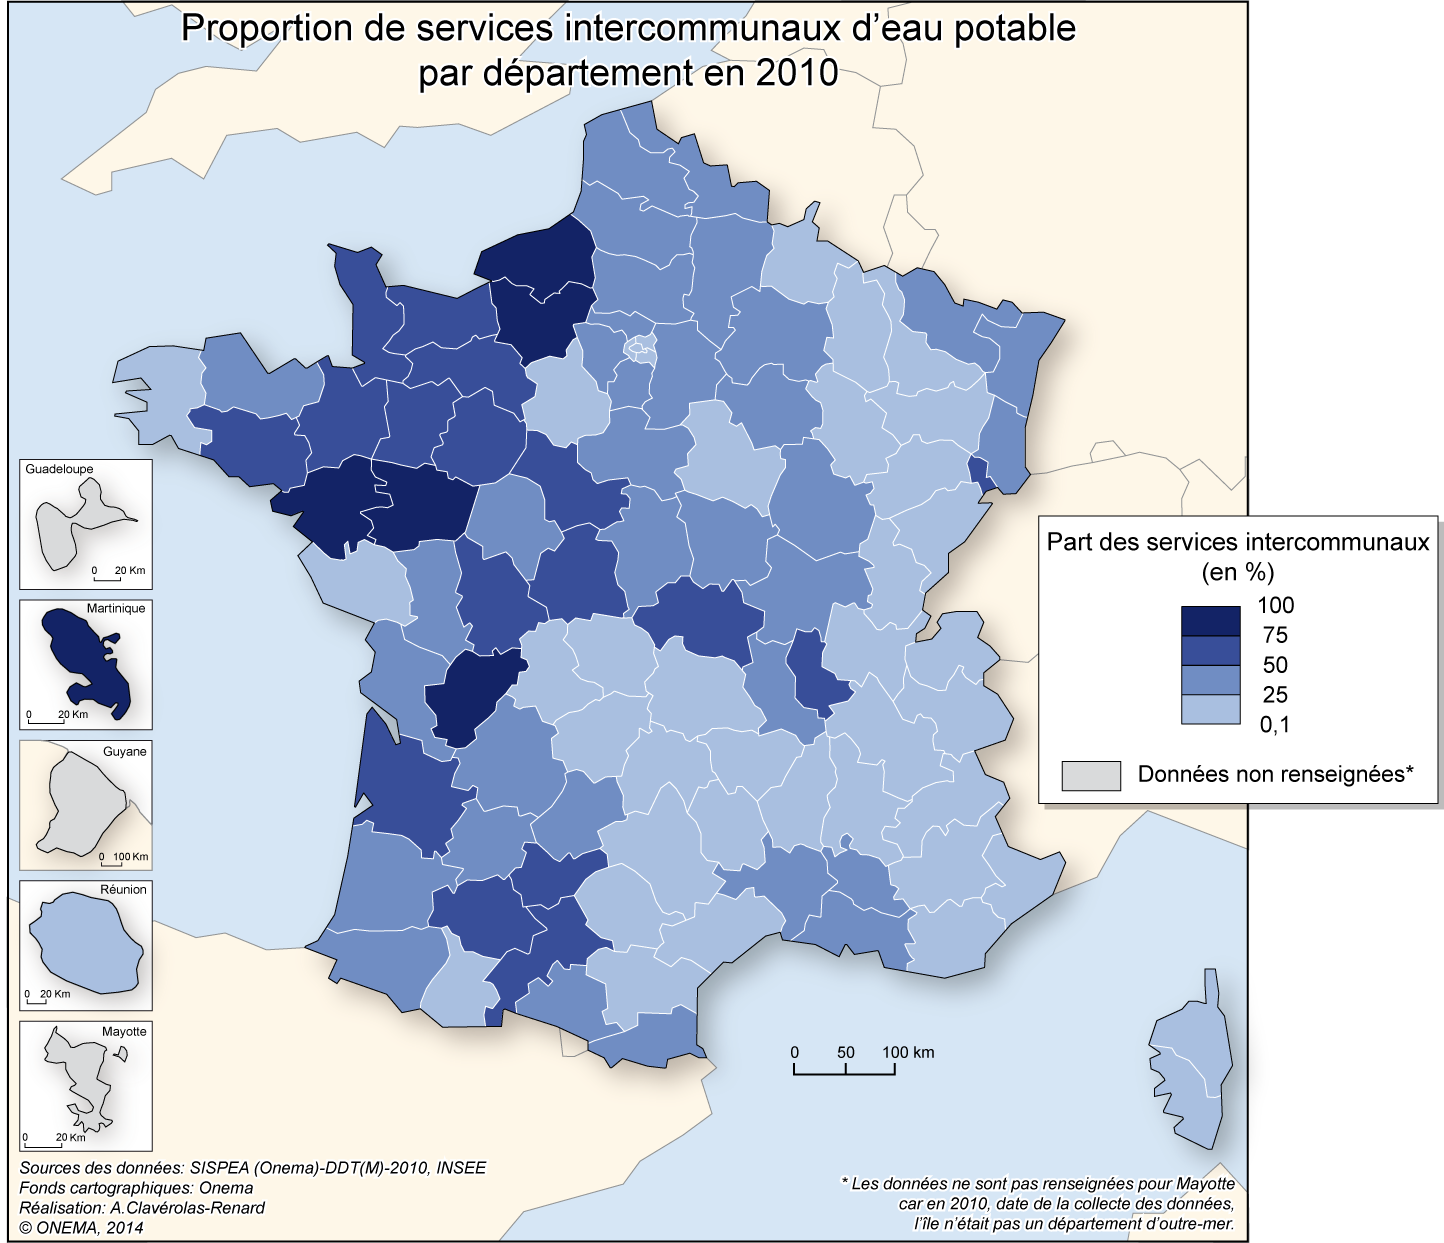 4)	Proportion de services intercommunaux d'eau potable en 2010